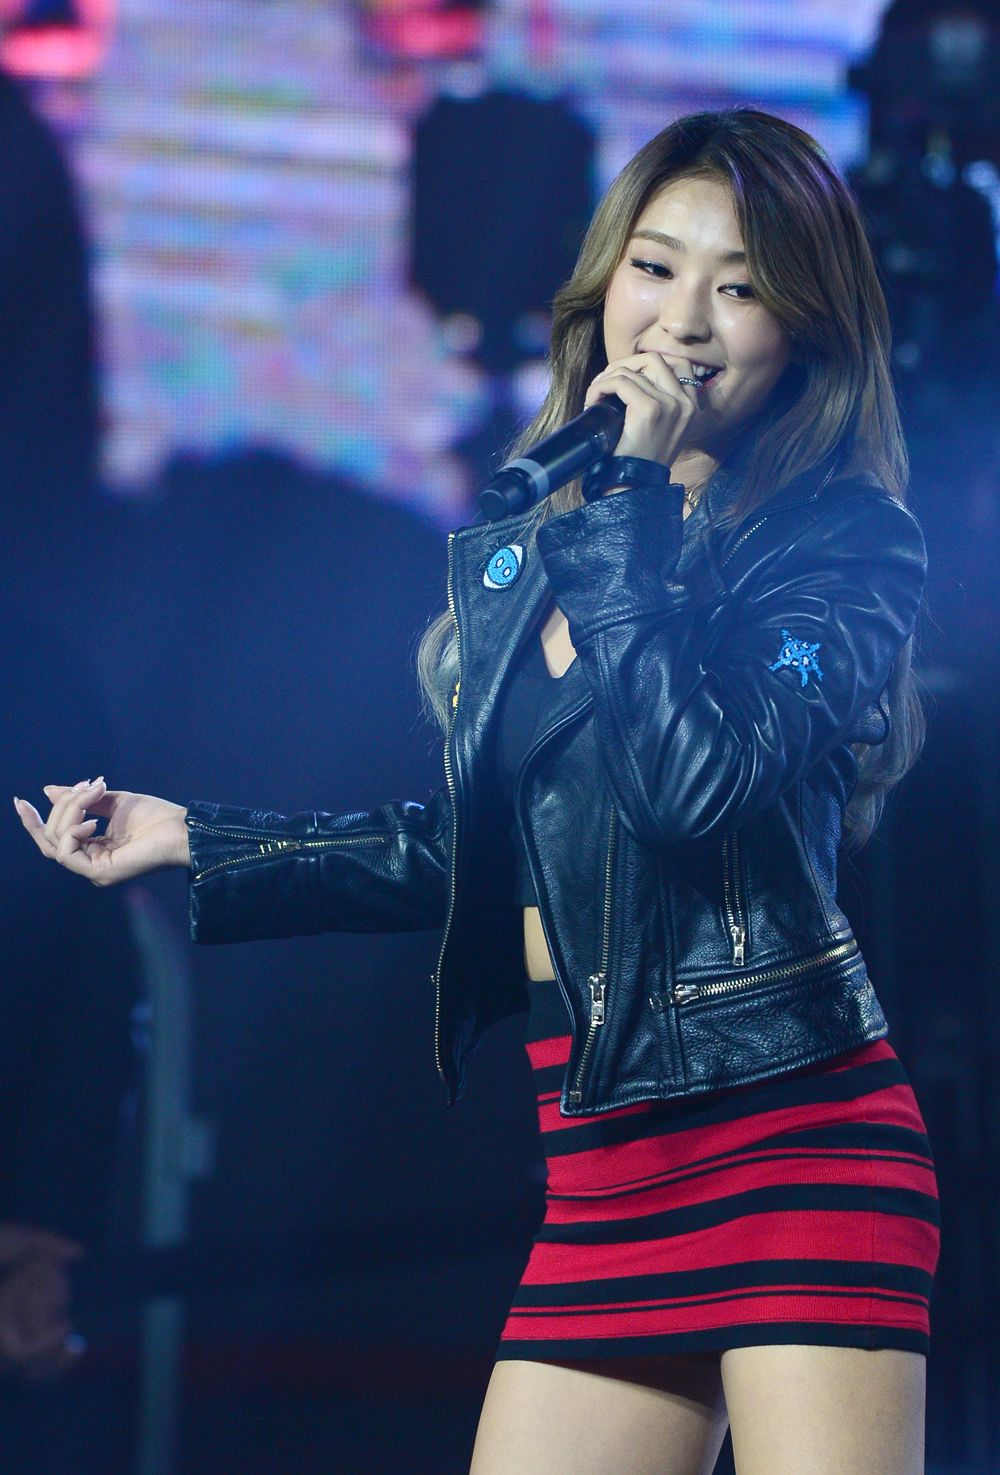 Bora from SISTAR performing at the Crowd Challenge Festival ! #kpop #korean #pop